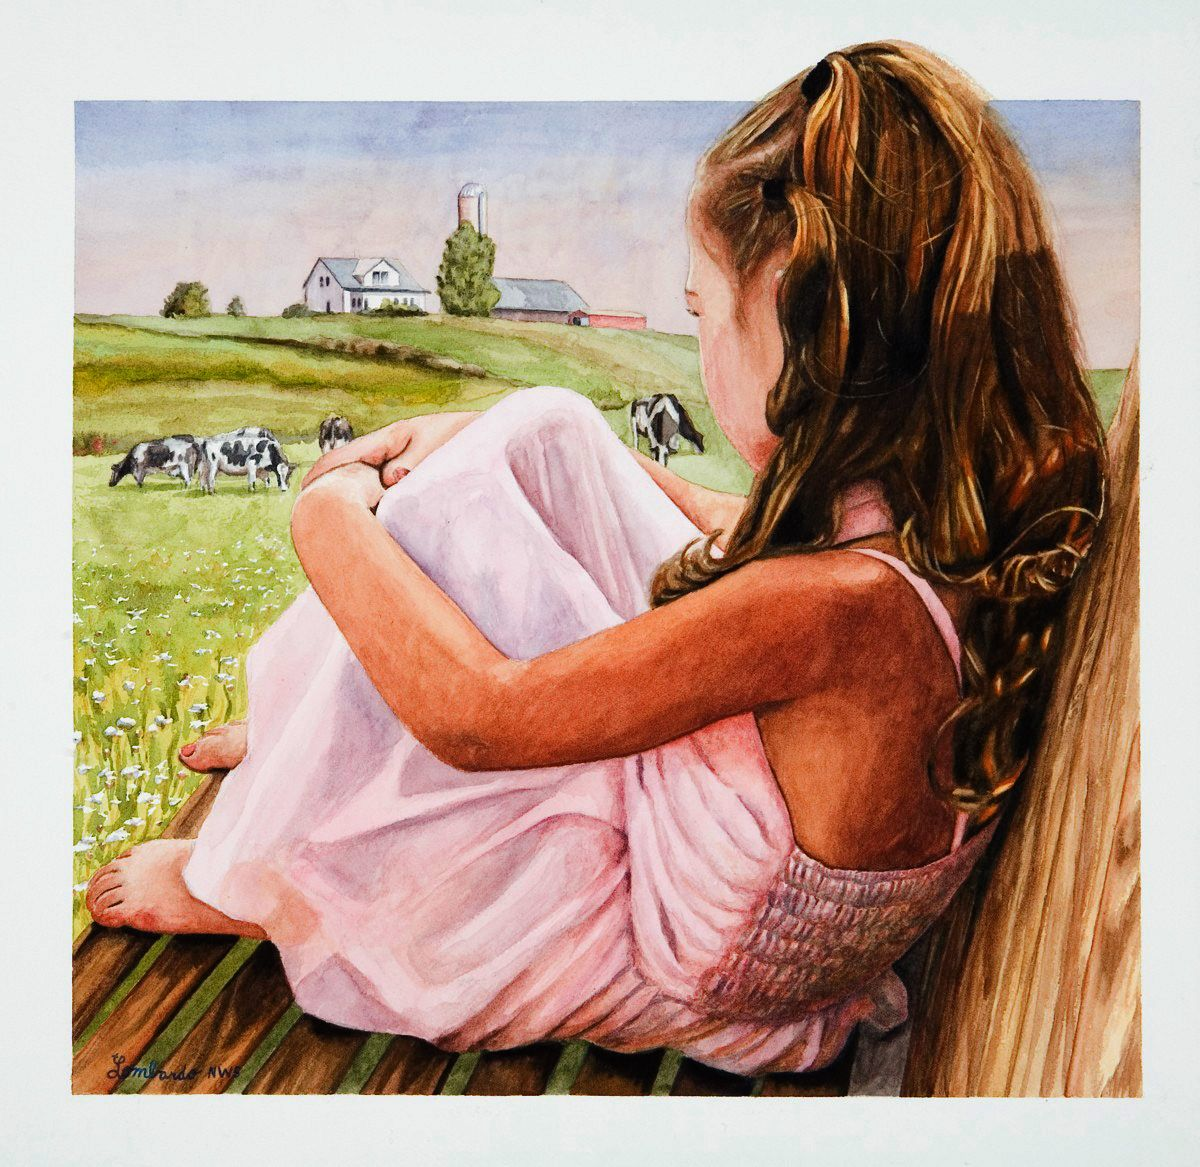 Watercolor Art Realism Painting Larry Lombardo Realistic Figure Paintings And Portraits How To Paint Watercolors A Face Country Scene